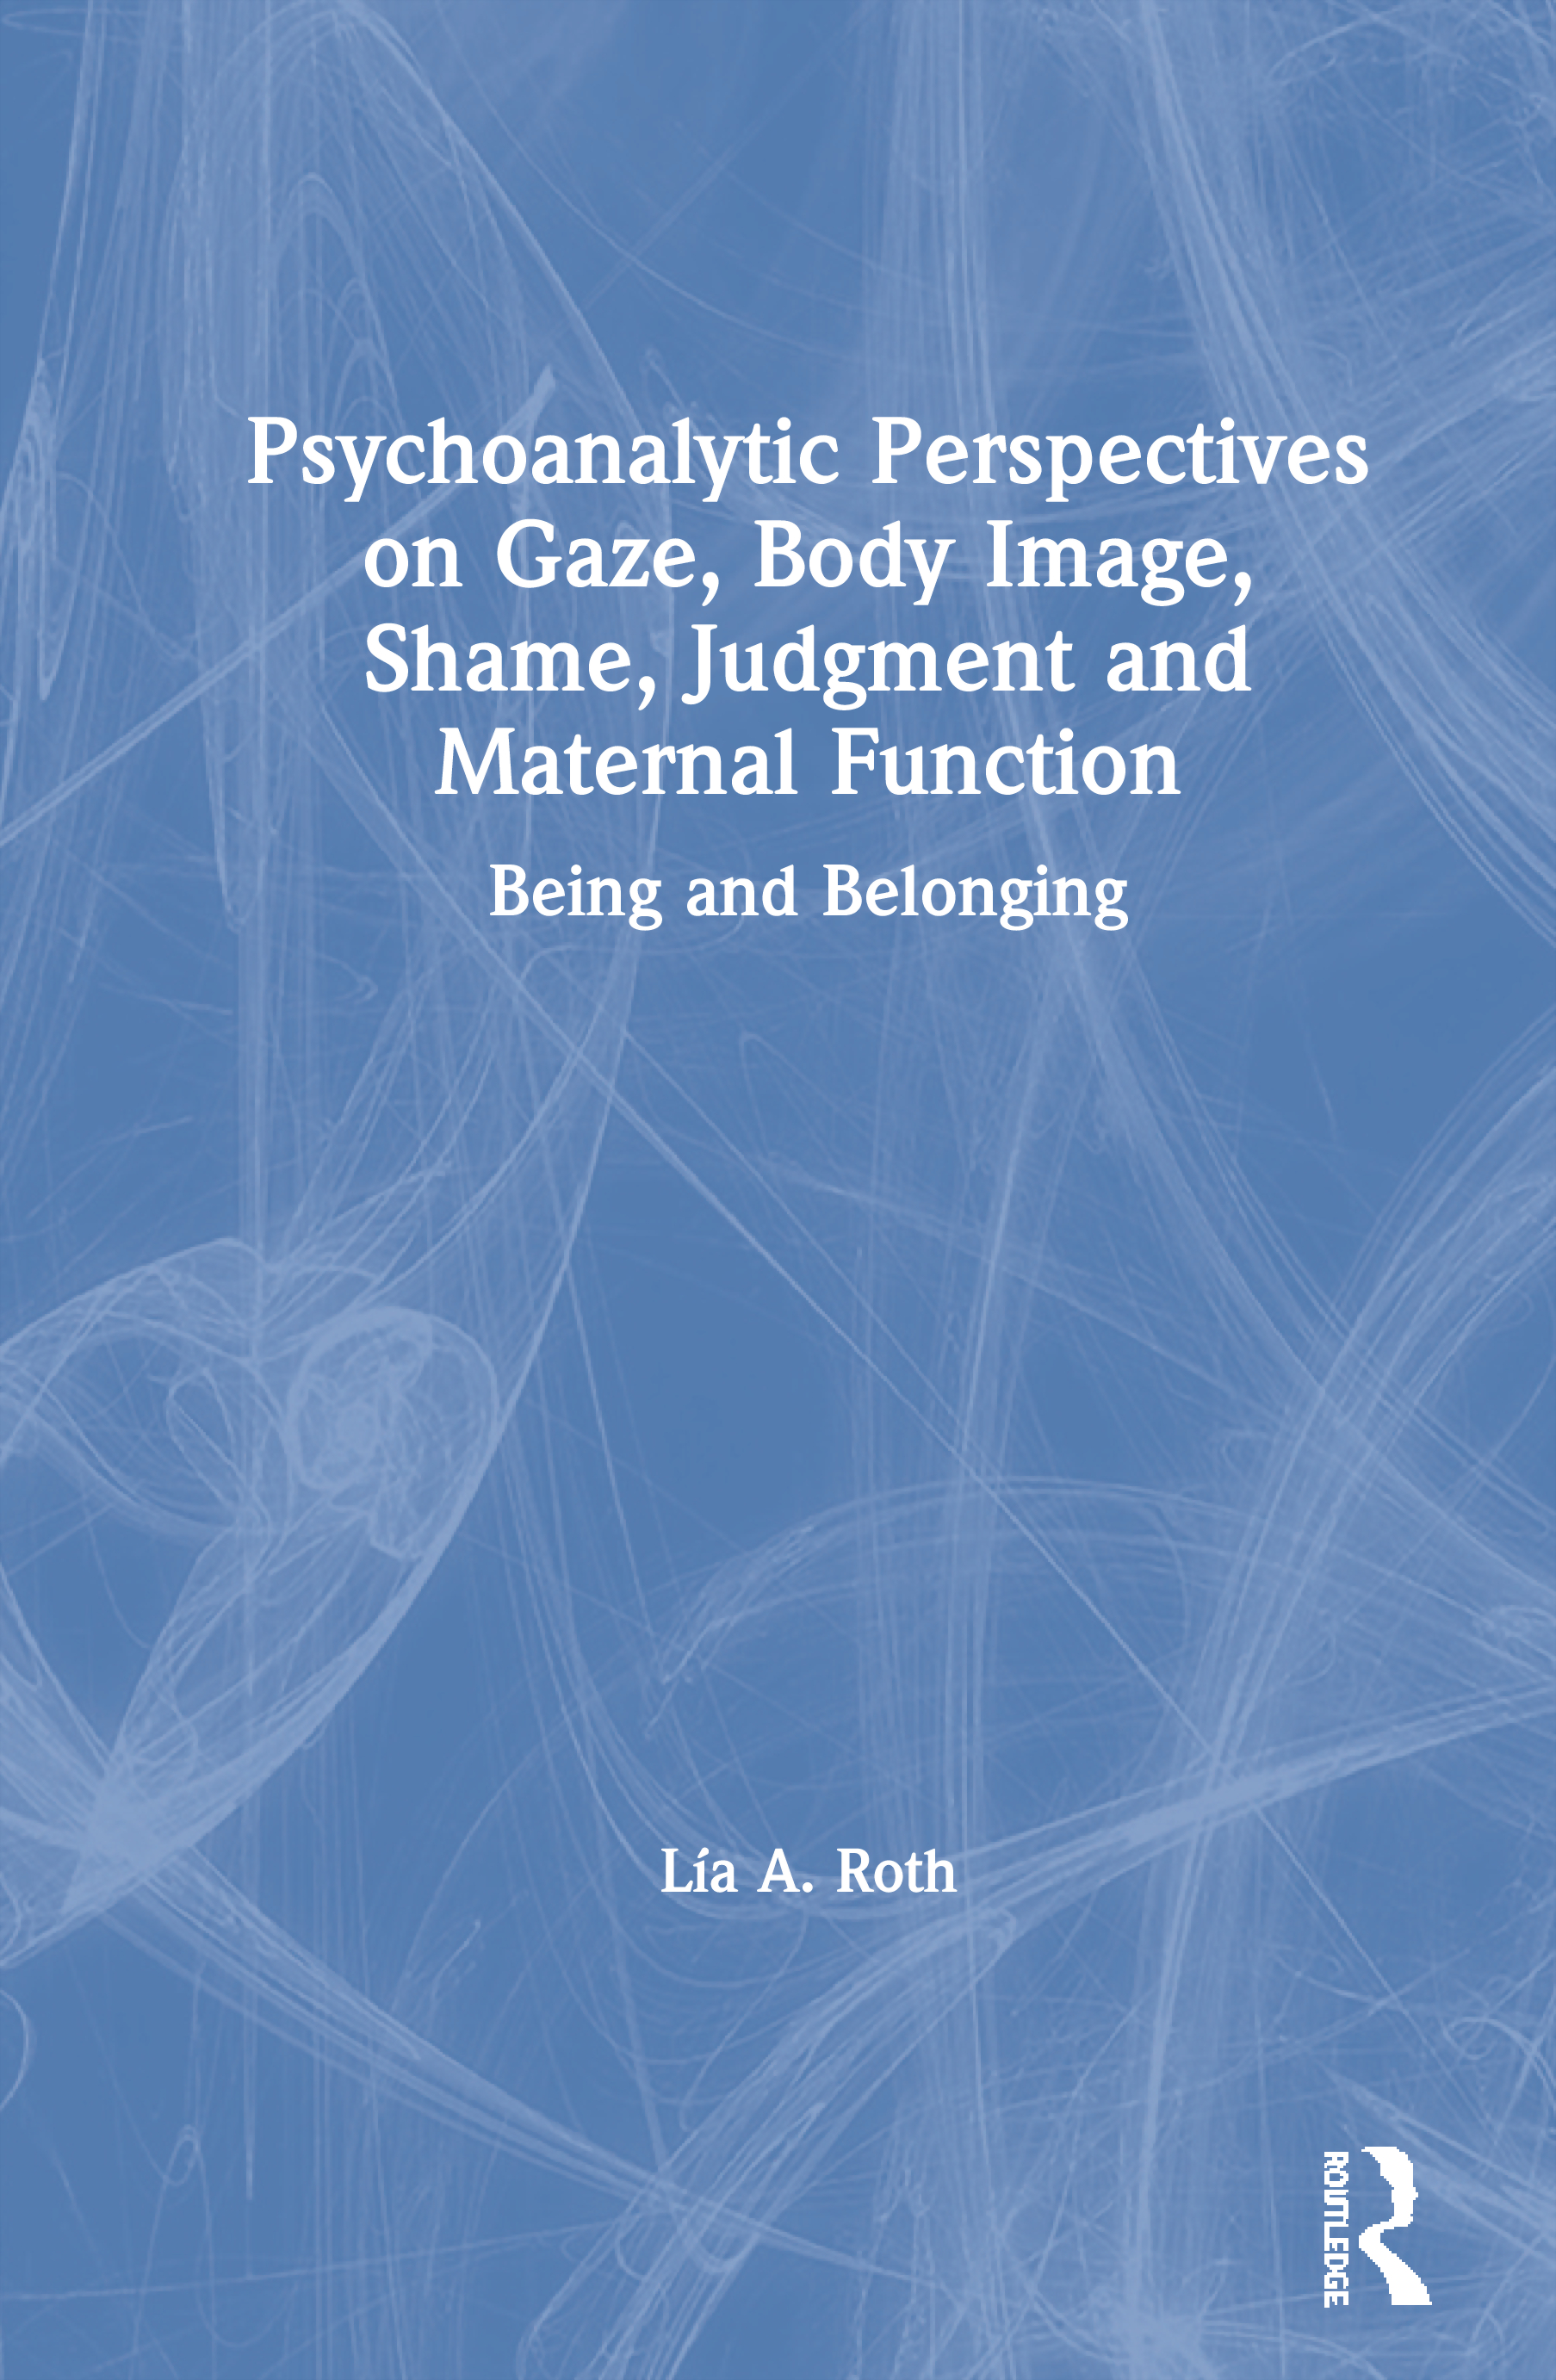 Psychoanalytic Perspectives on Gaze, Body Image, Shame, Judgment and Maternal Function: Being and Belonging, 1st Edition (Hardback) book cover